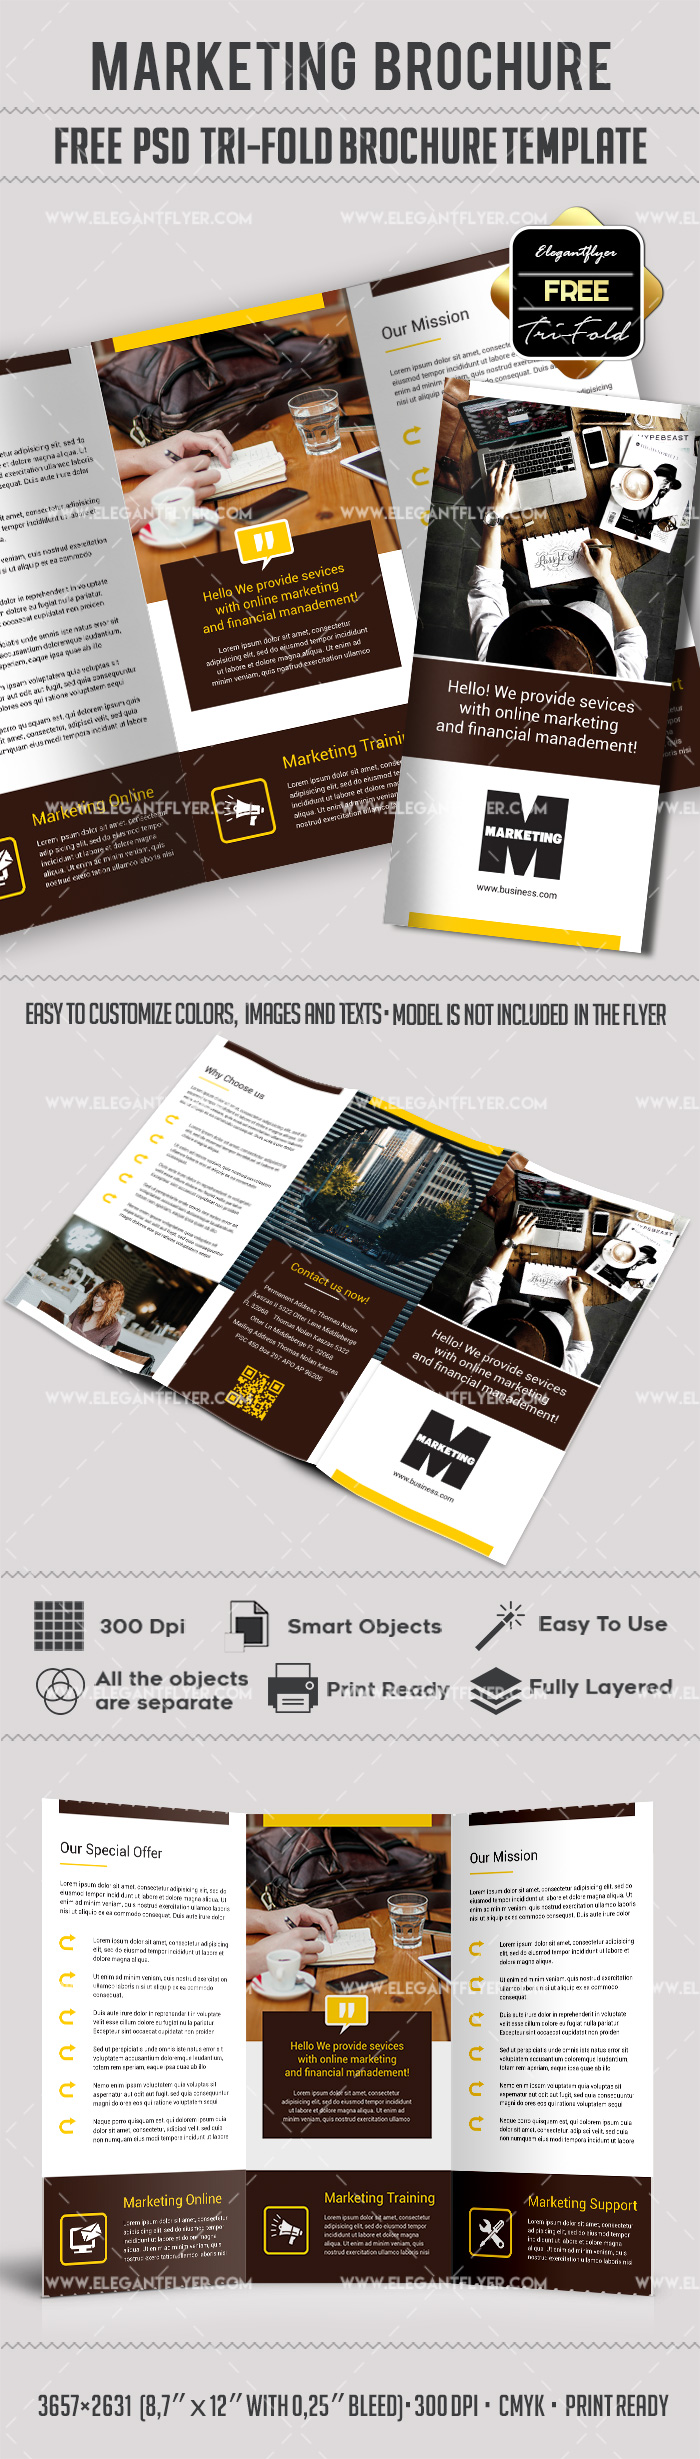 Marketing free tri fold psd brochure template by for Free printable tri fold brochure template